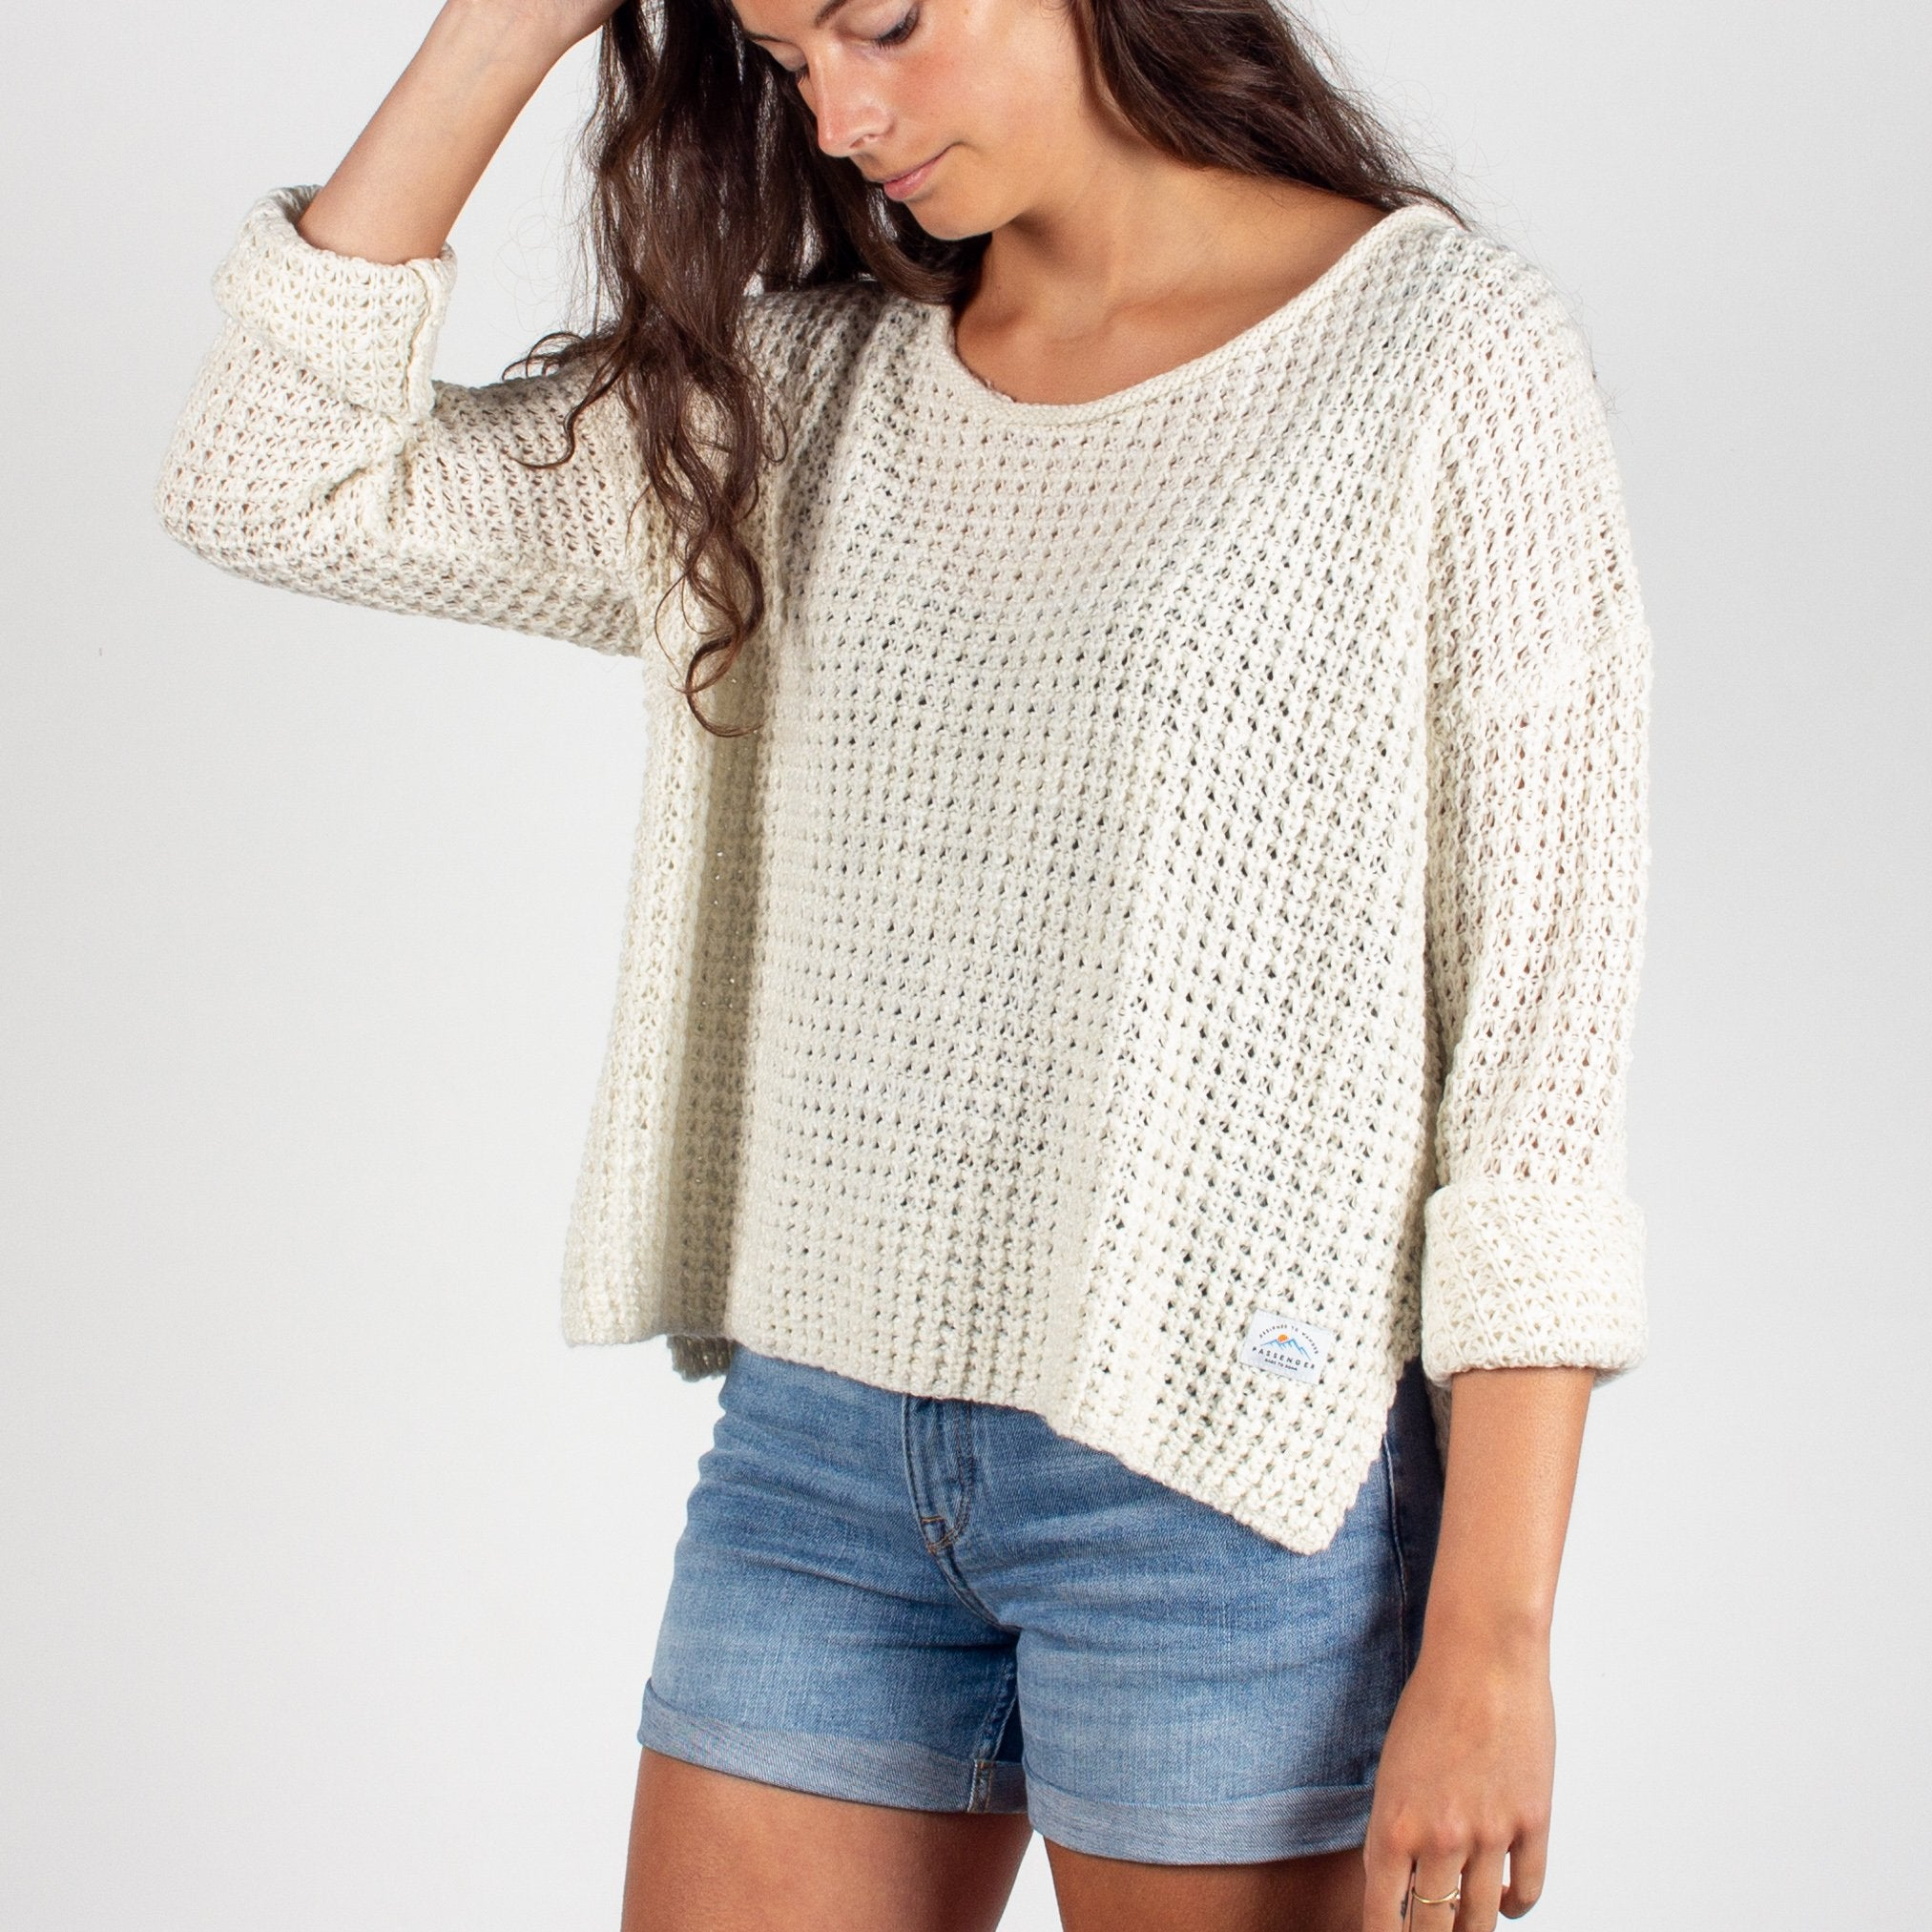 Story Knitted Sweater - Cream image 3